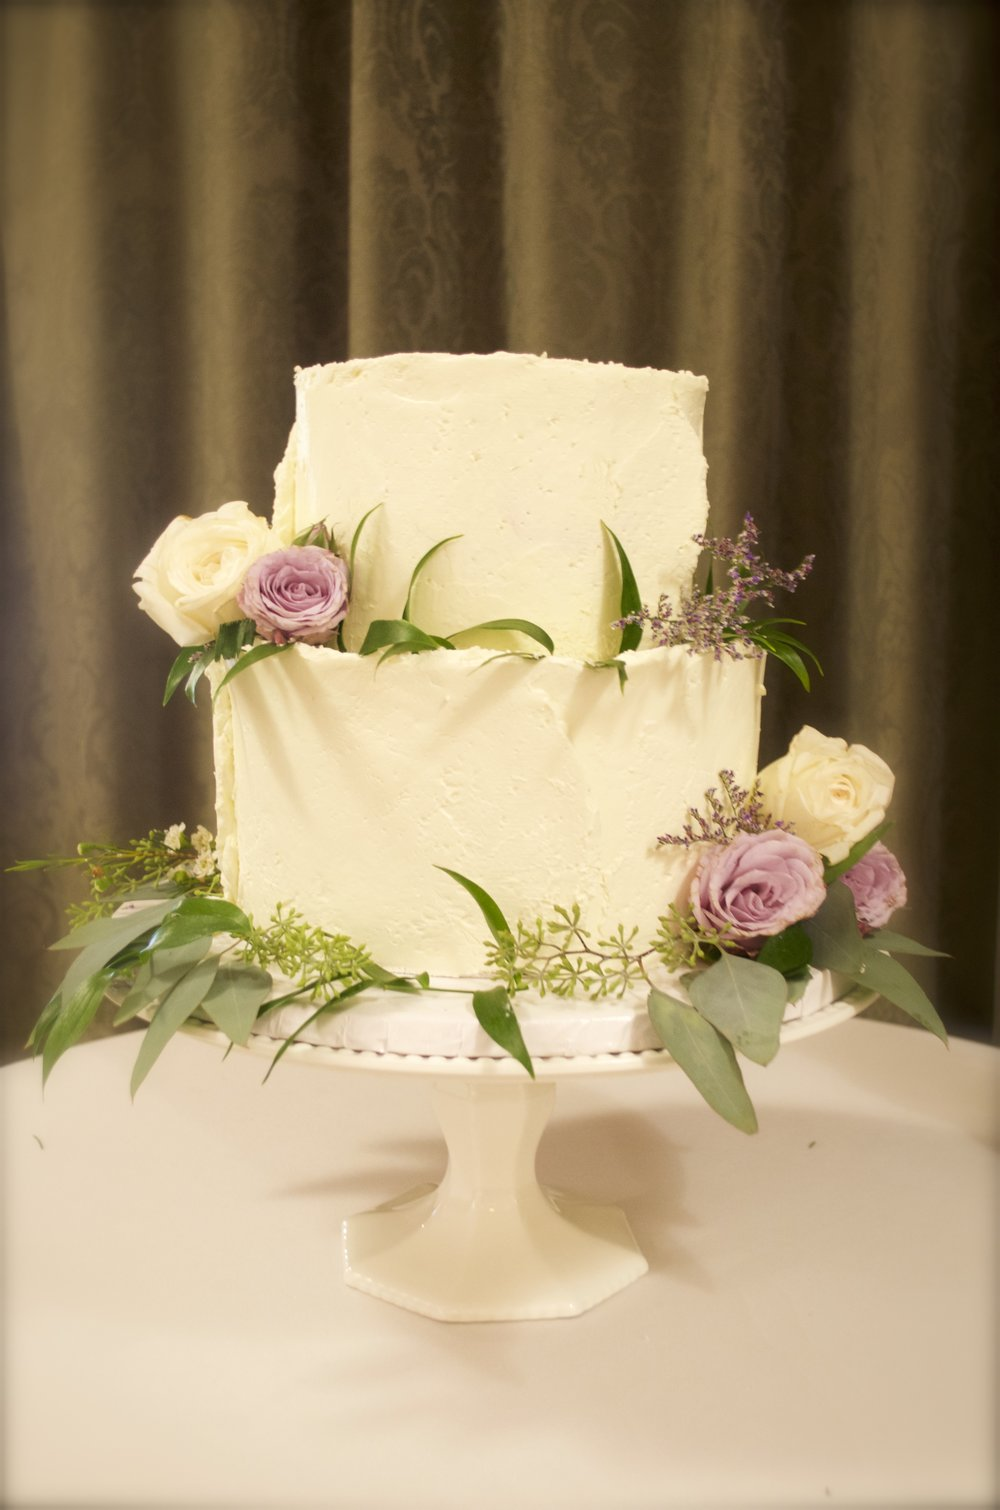 Rough finish buttercream cake with white and lilac roses